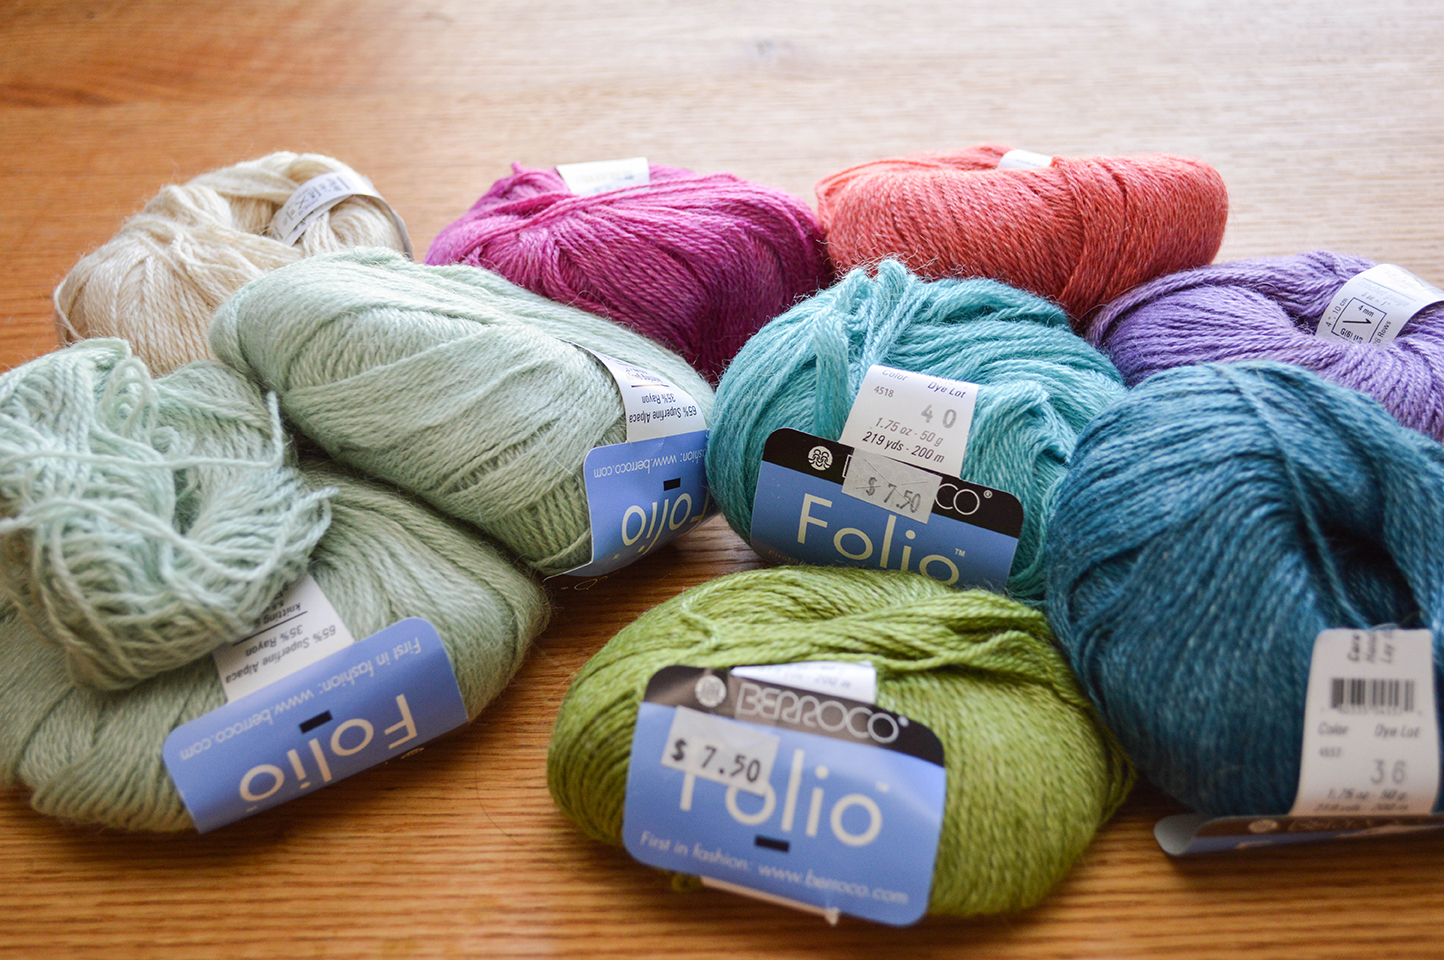 Berroco Folio lot, mixed colors